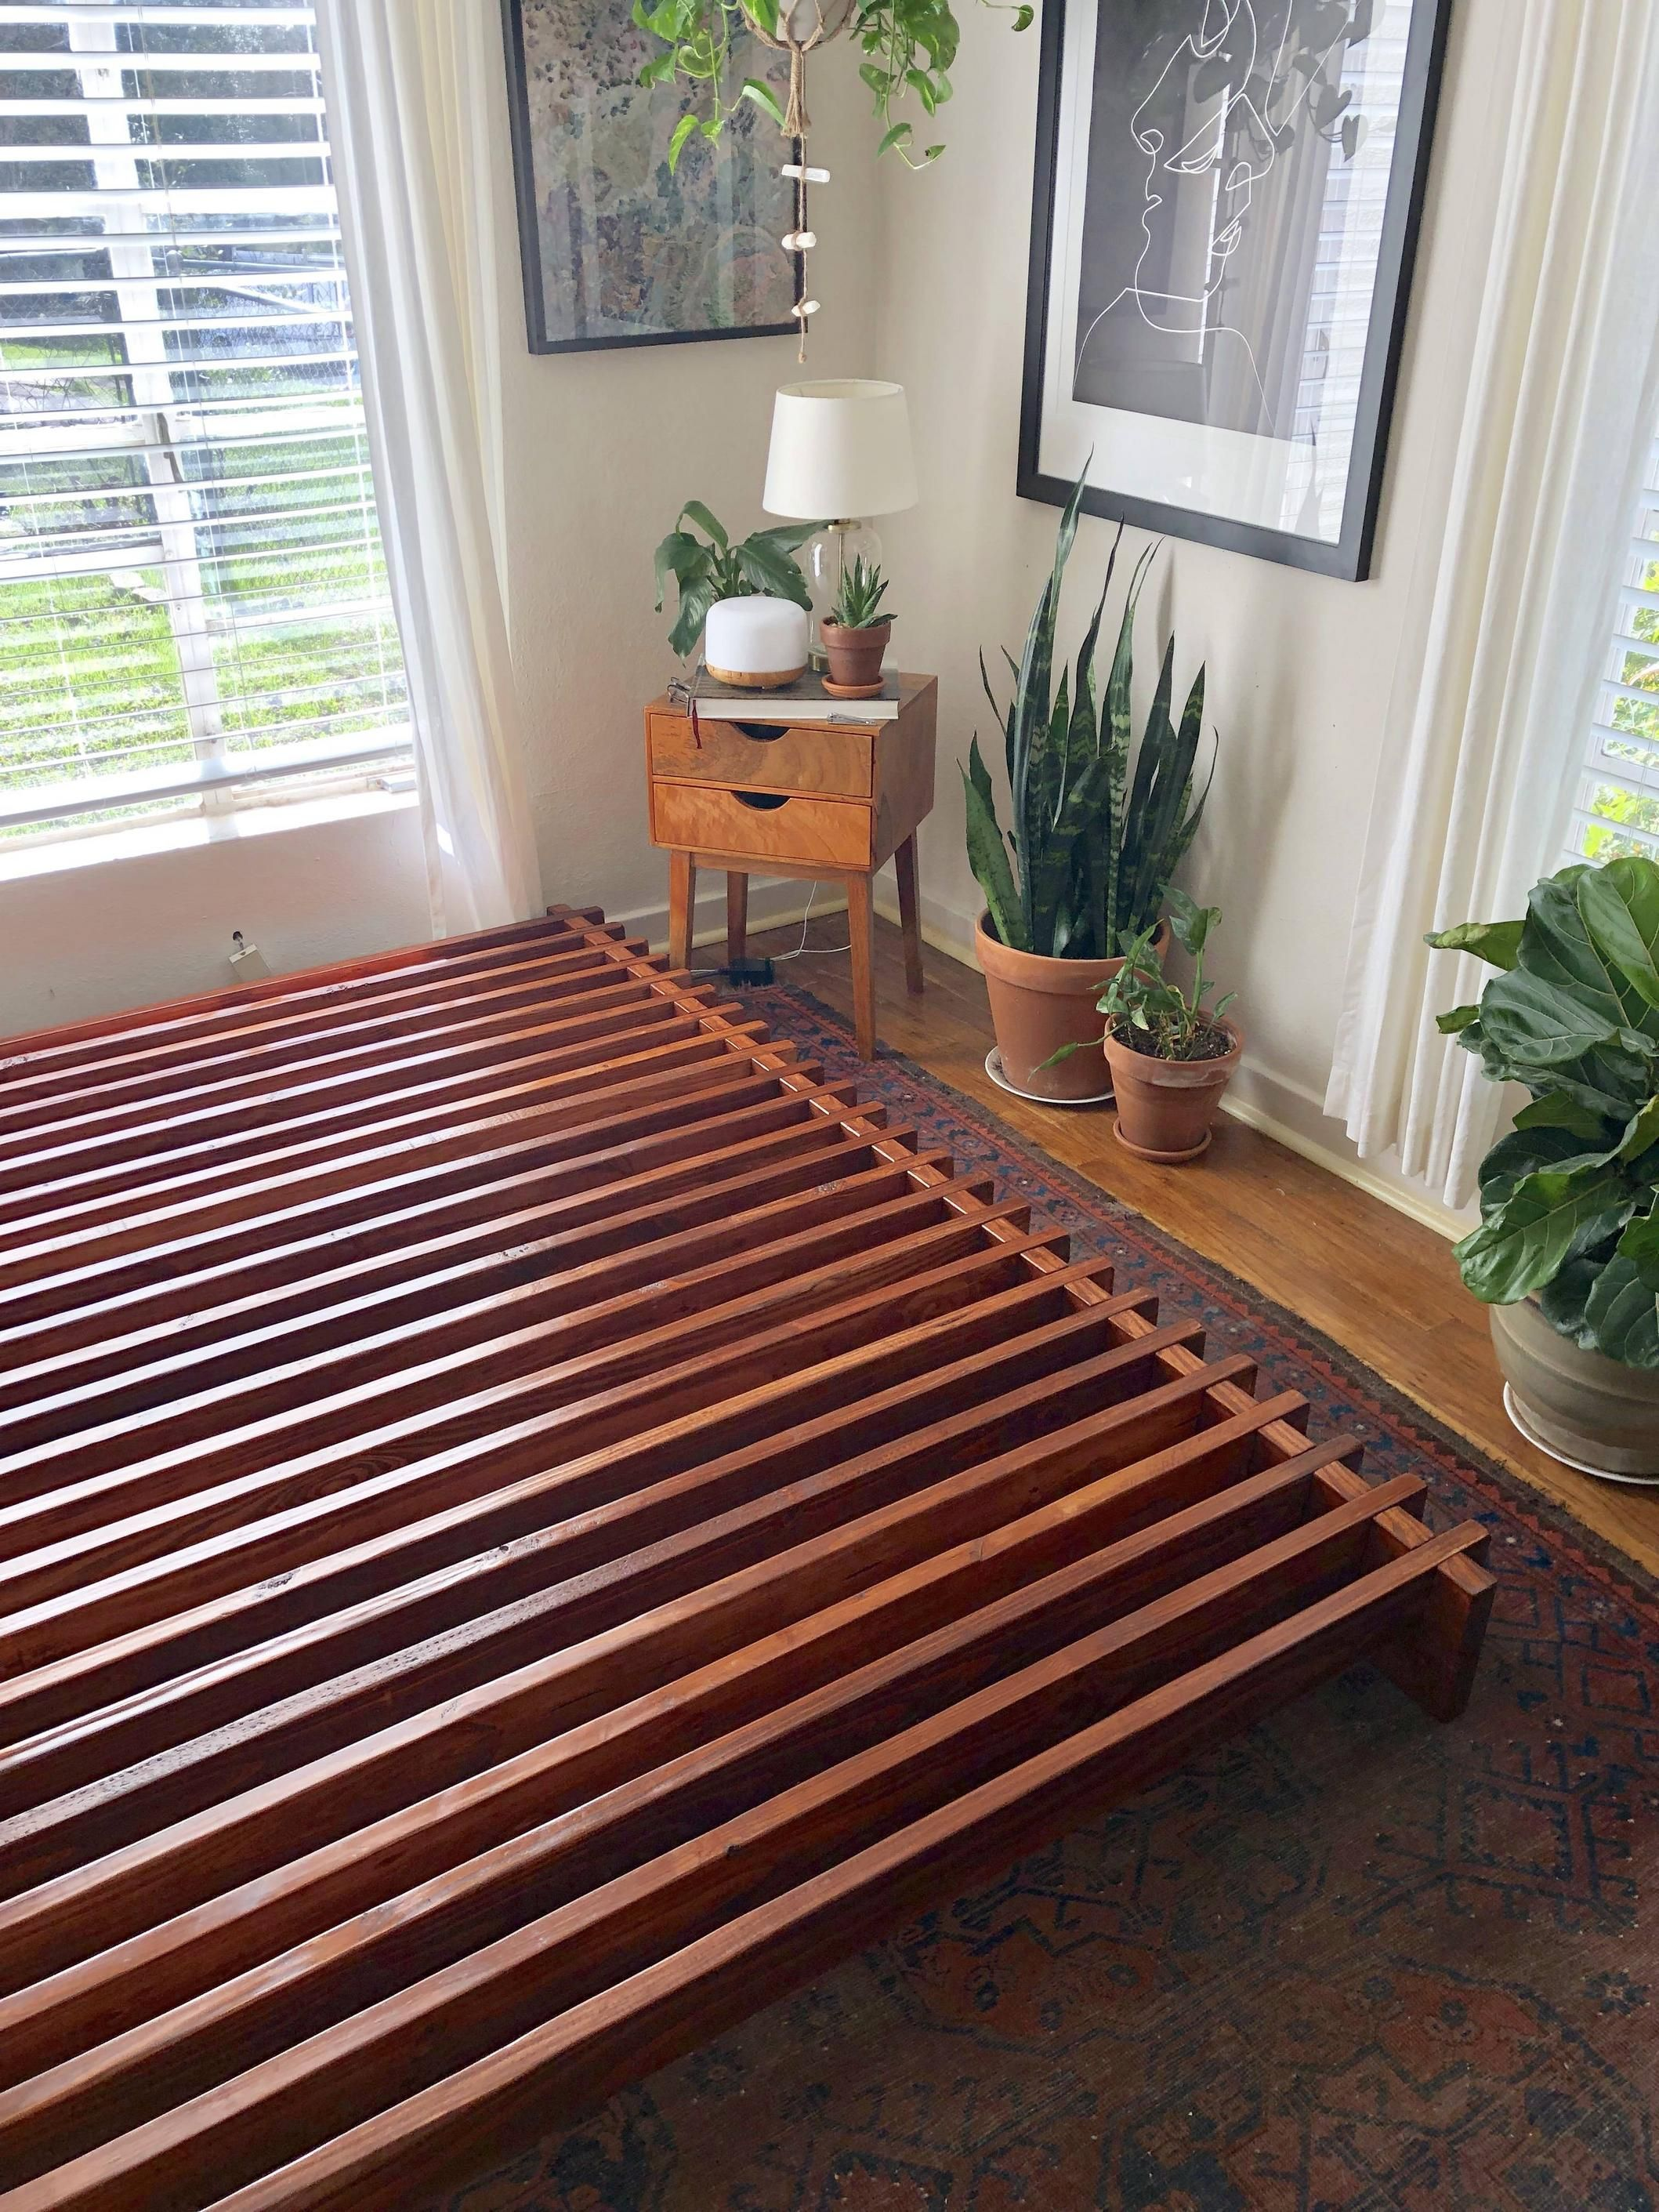 First diy woodworking project slatted queen bed frame